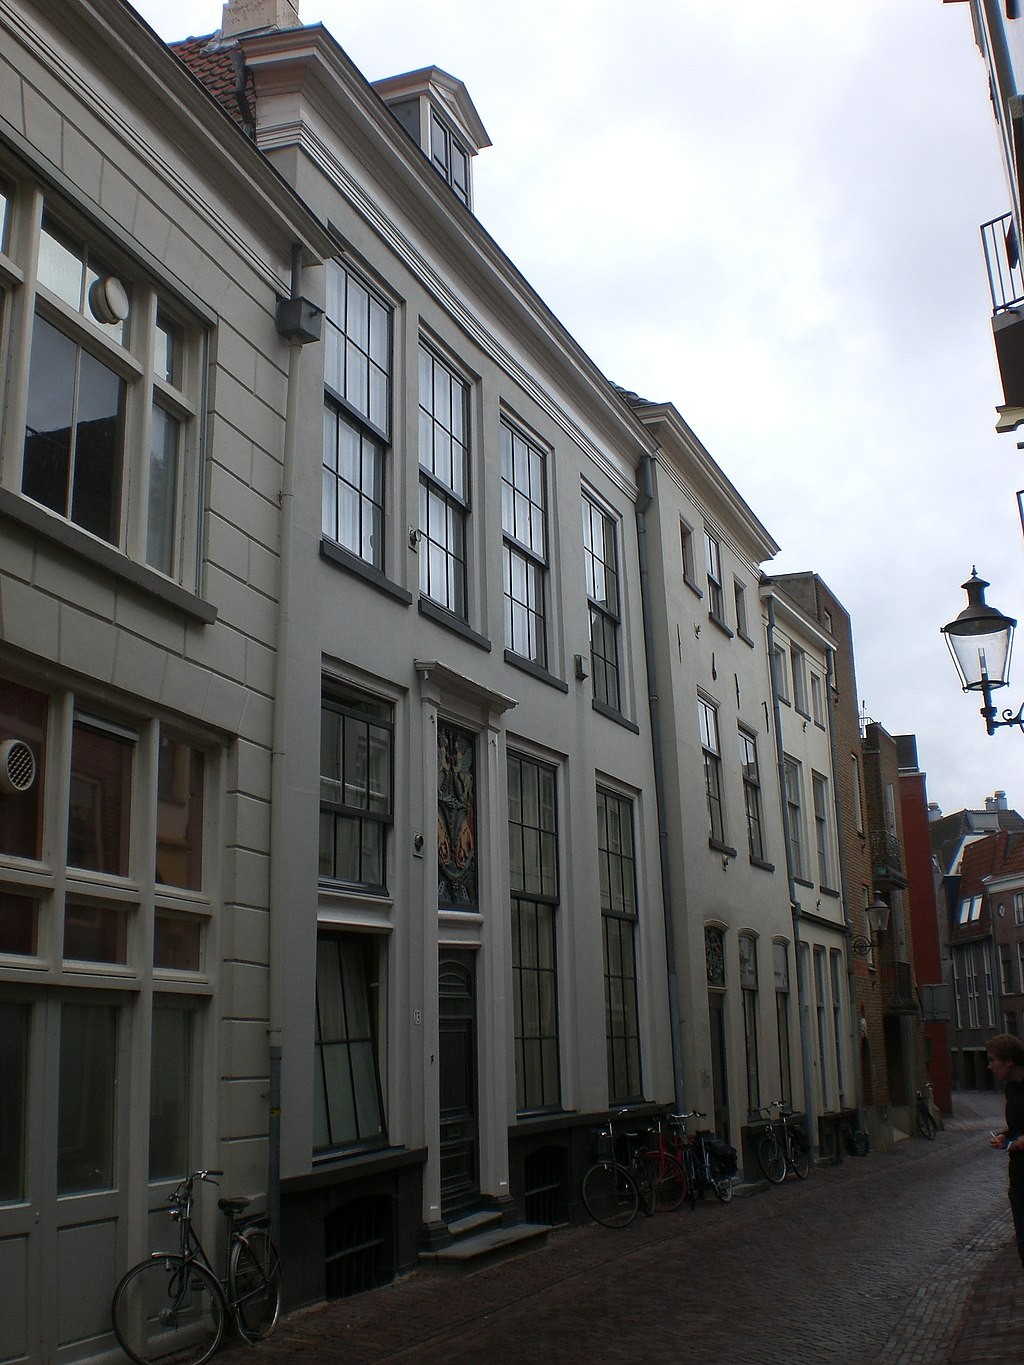 File:Polstraat 13.JPG